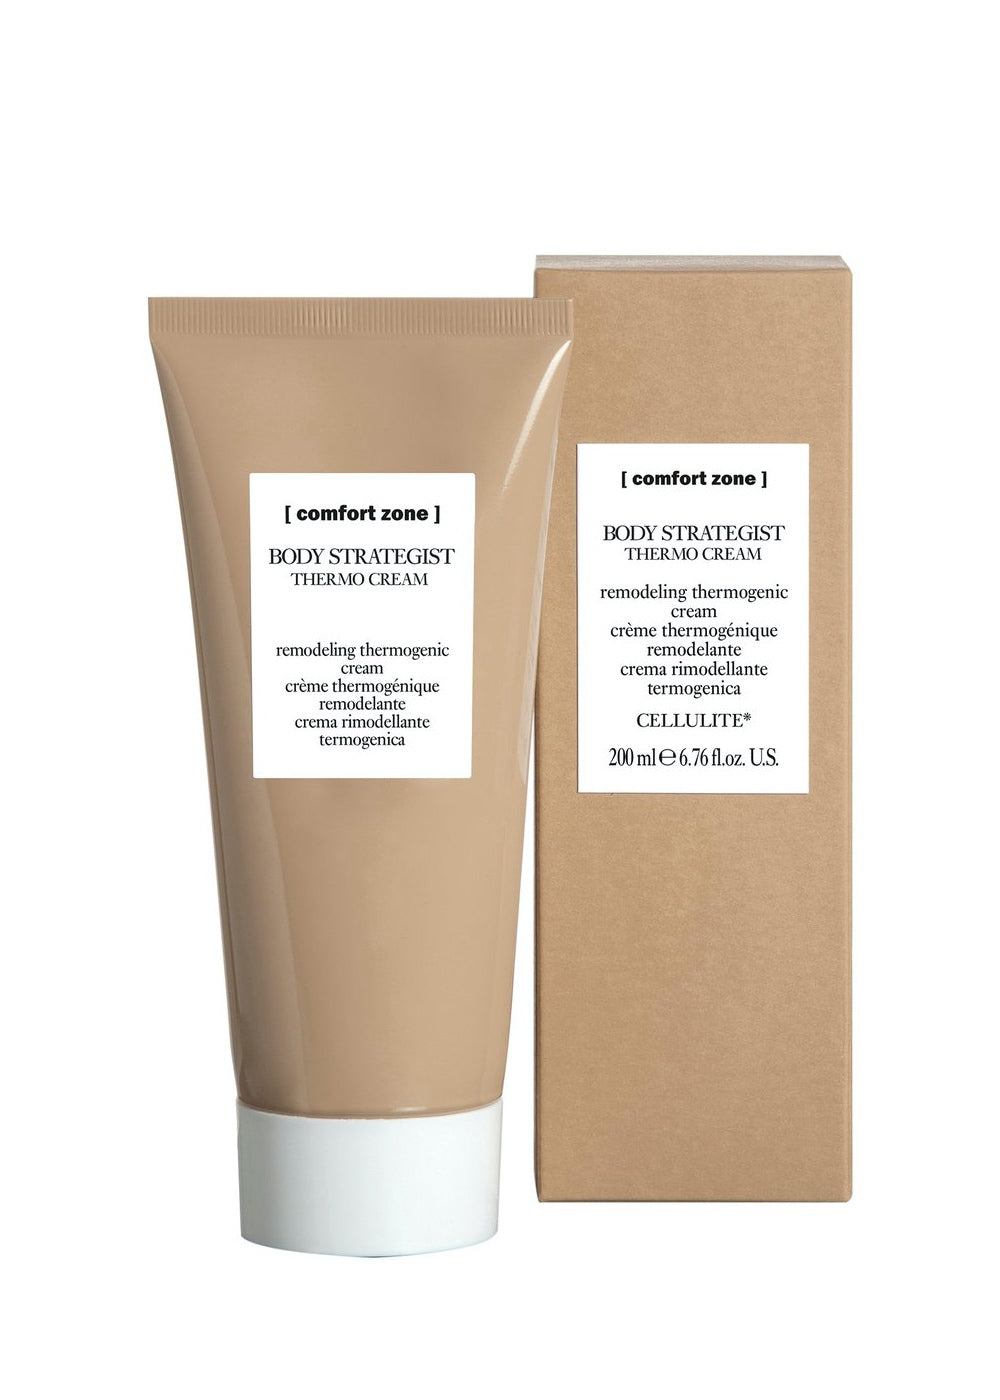 [comfort zone] Body Strategist Thermo Cream